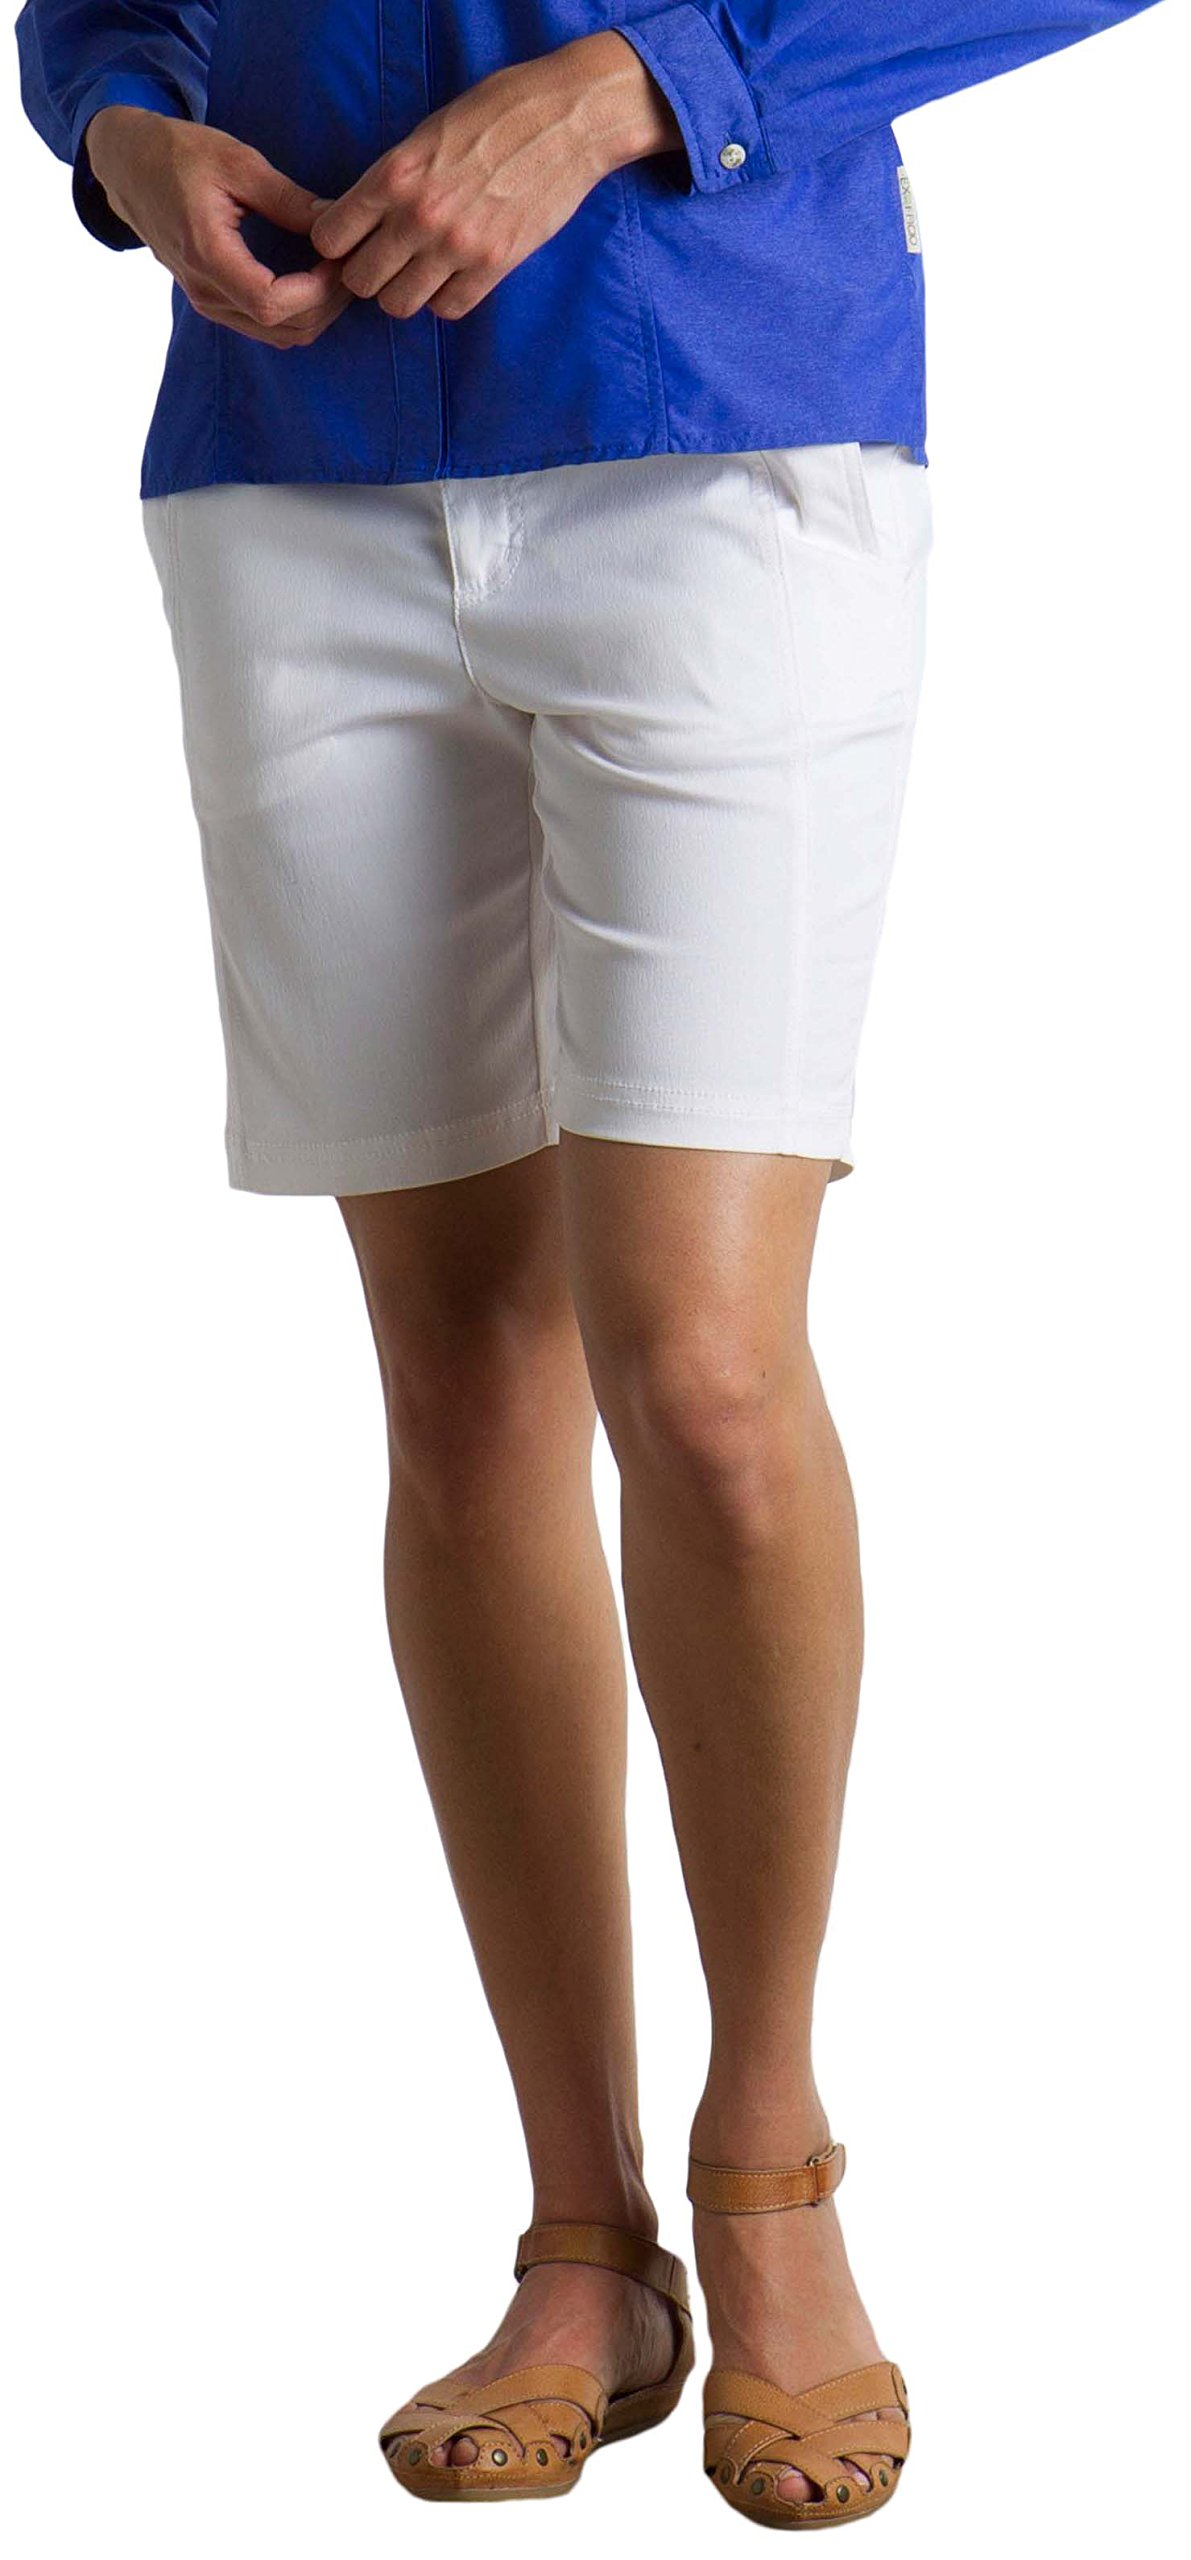 ExOfficio Women's Costera Lightweight Bermuda Shorts, White, Size 4 by ExOfficio